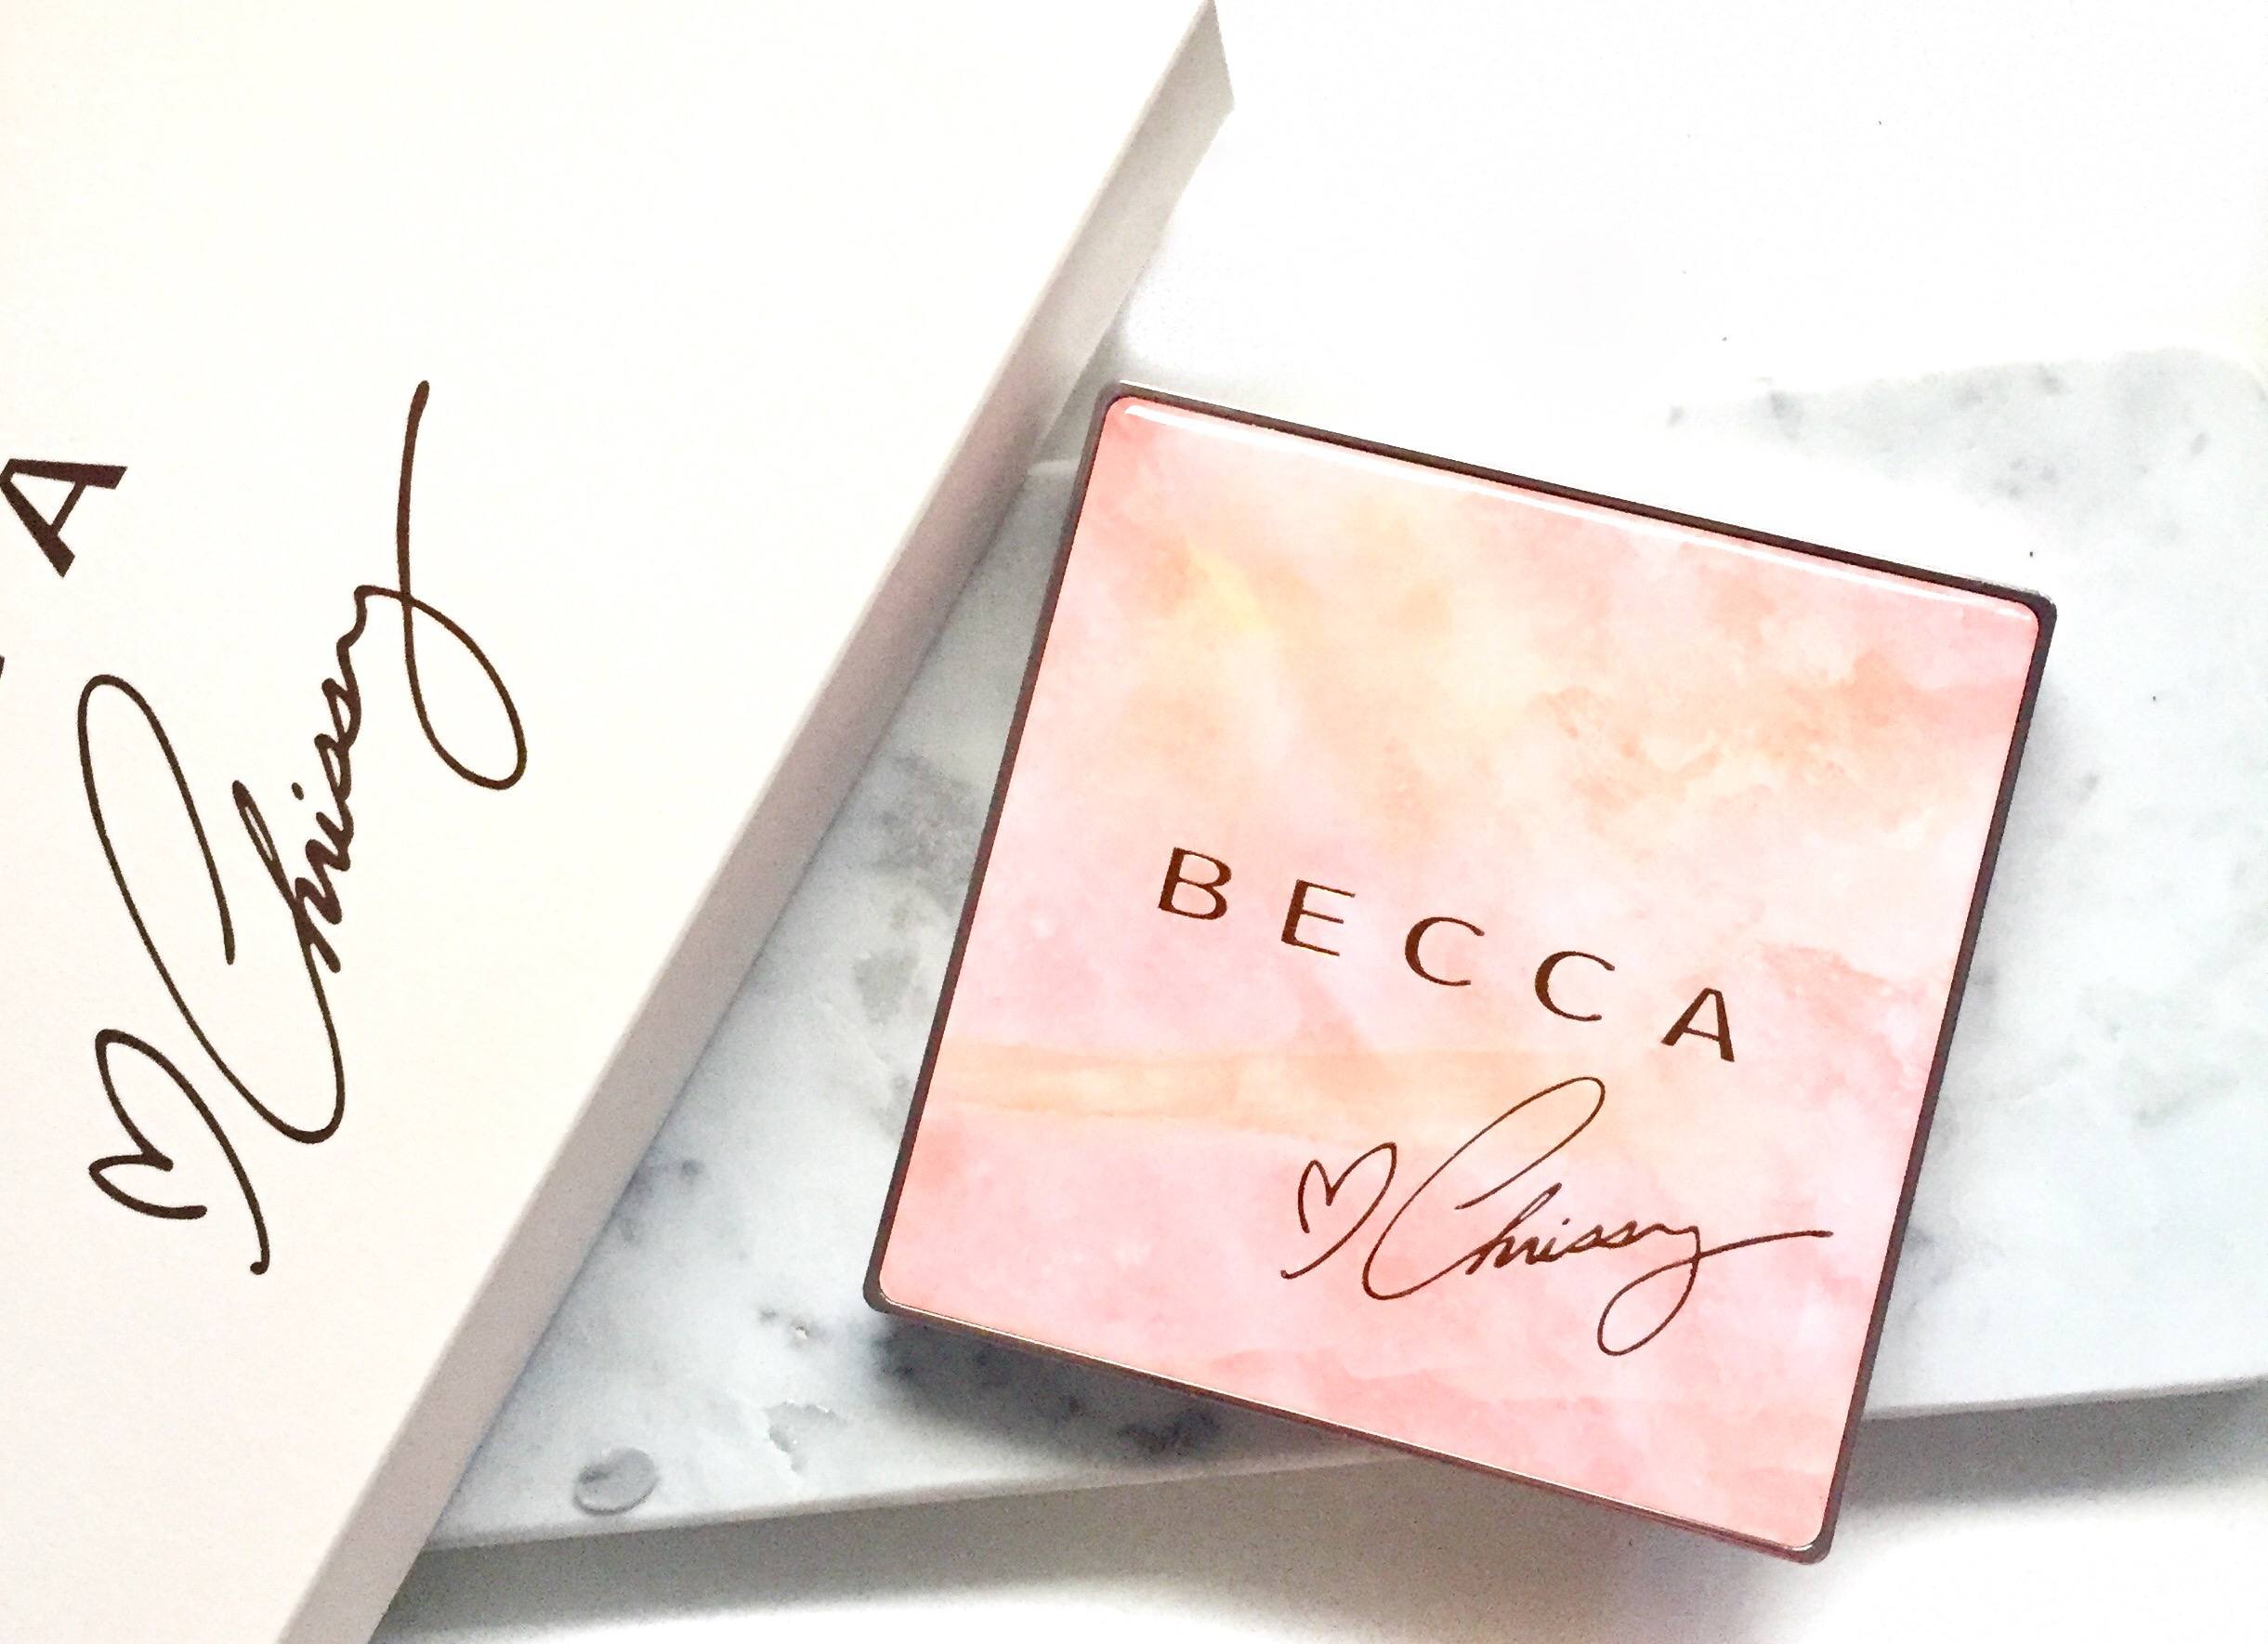 BECCAxCHRISSY FACE GLOW PALETTE